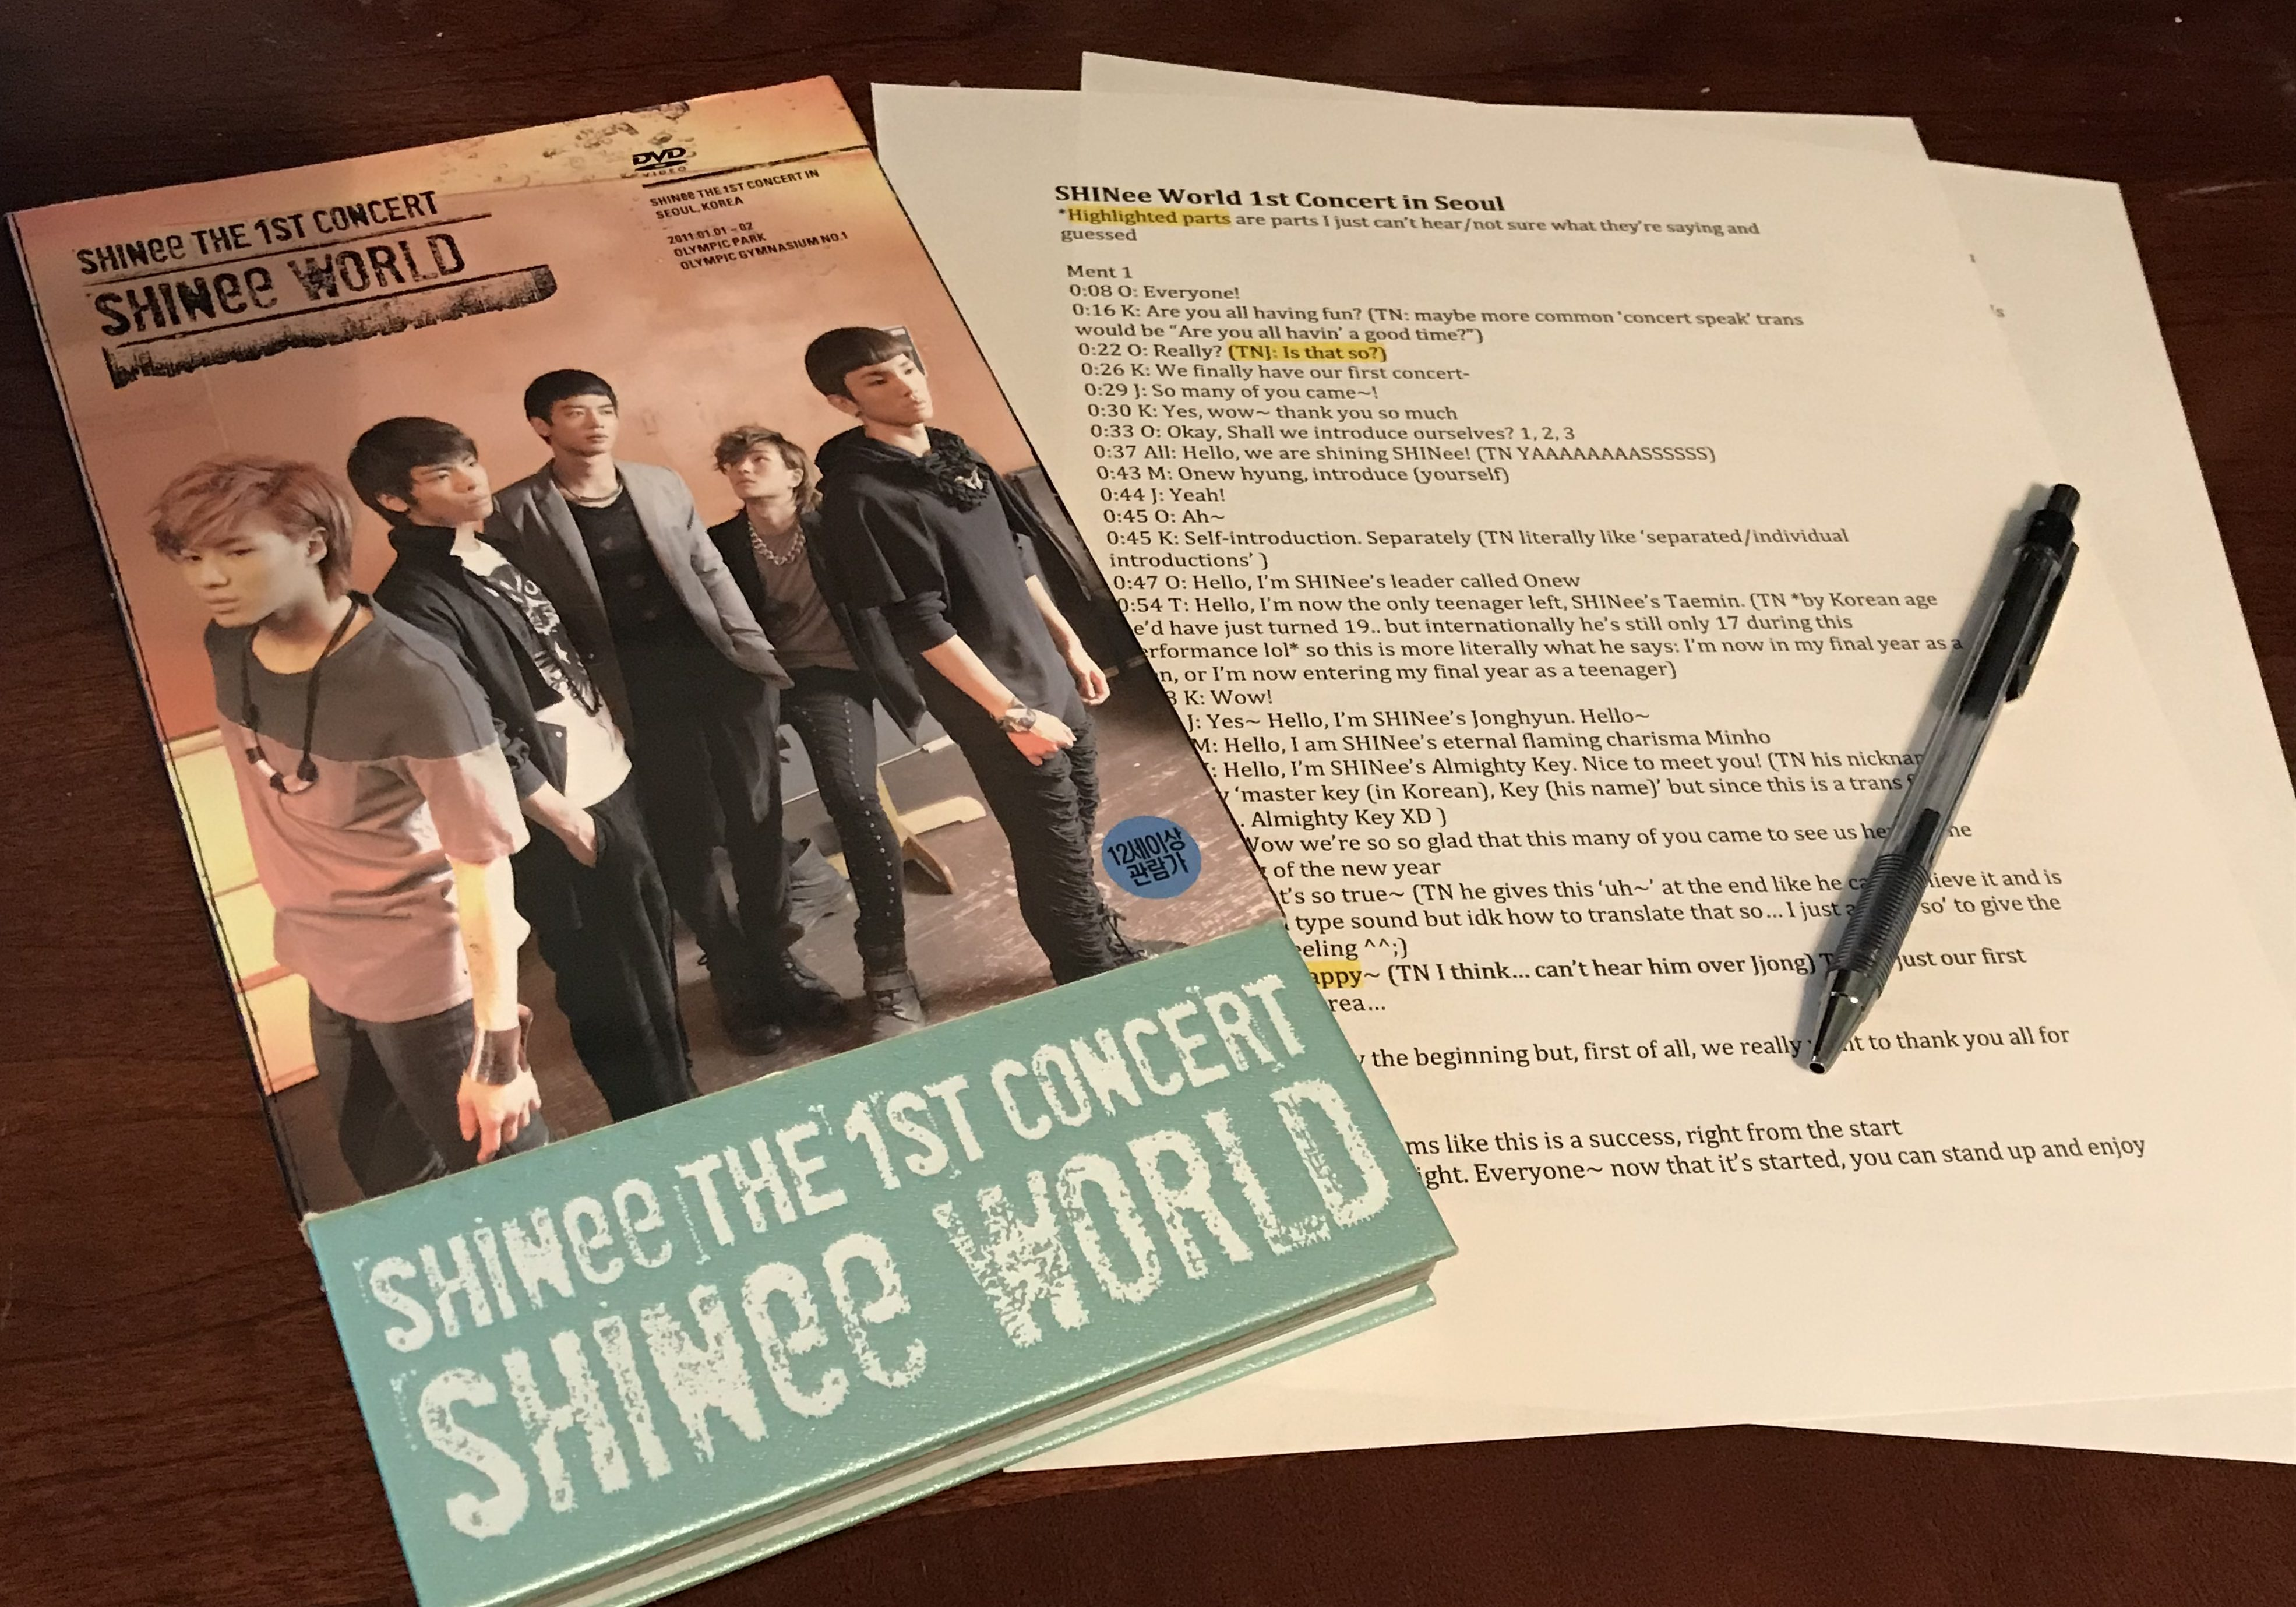 SHINee World 1st Concert in Seoul [Eng Trans]